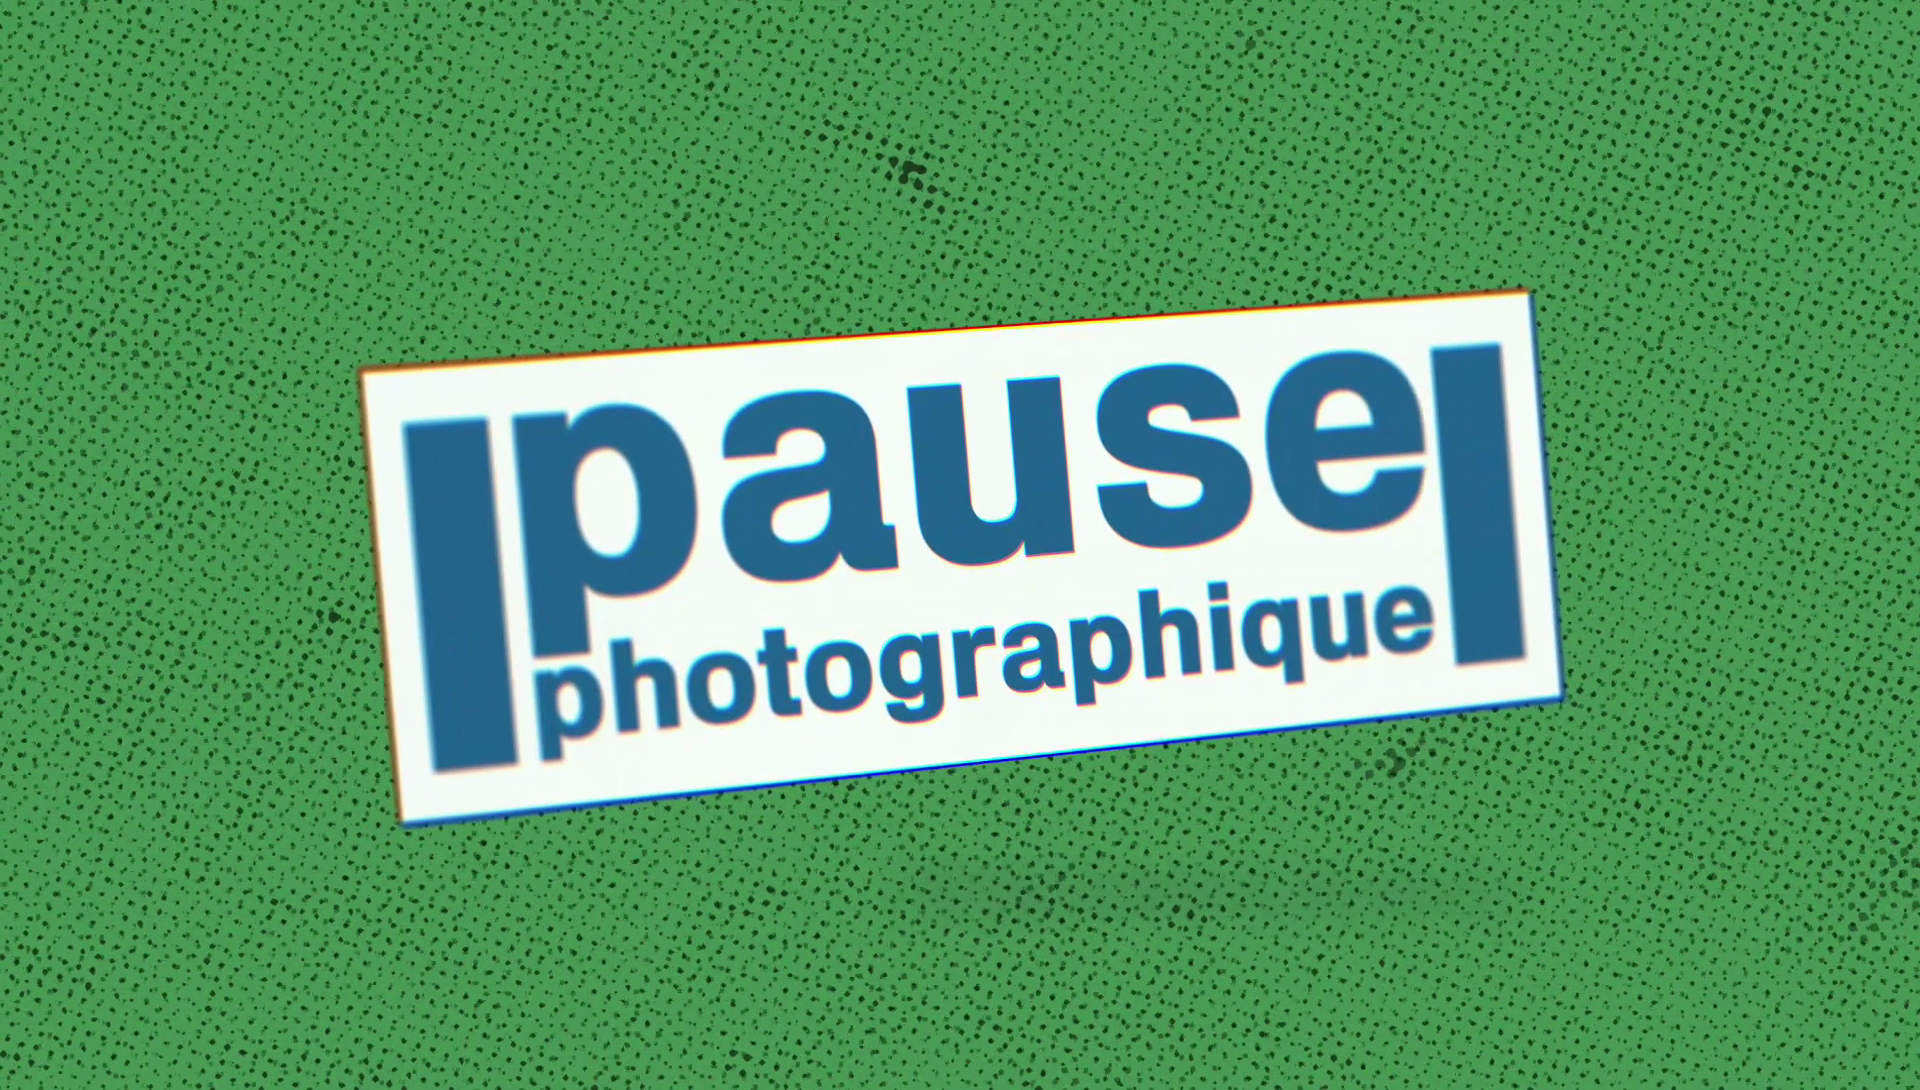 Pause photographique